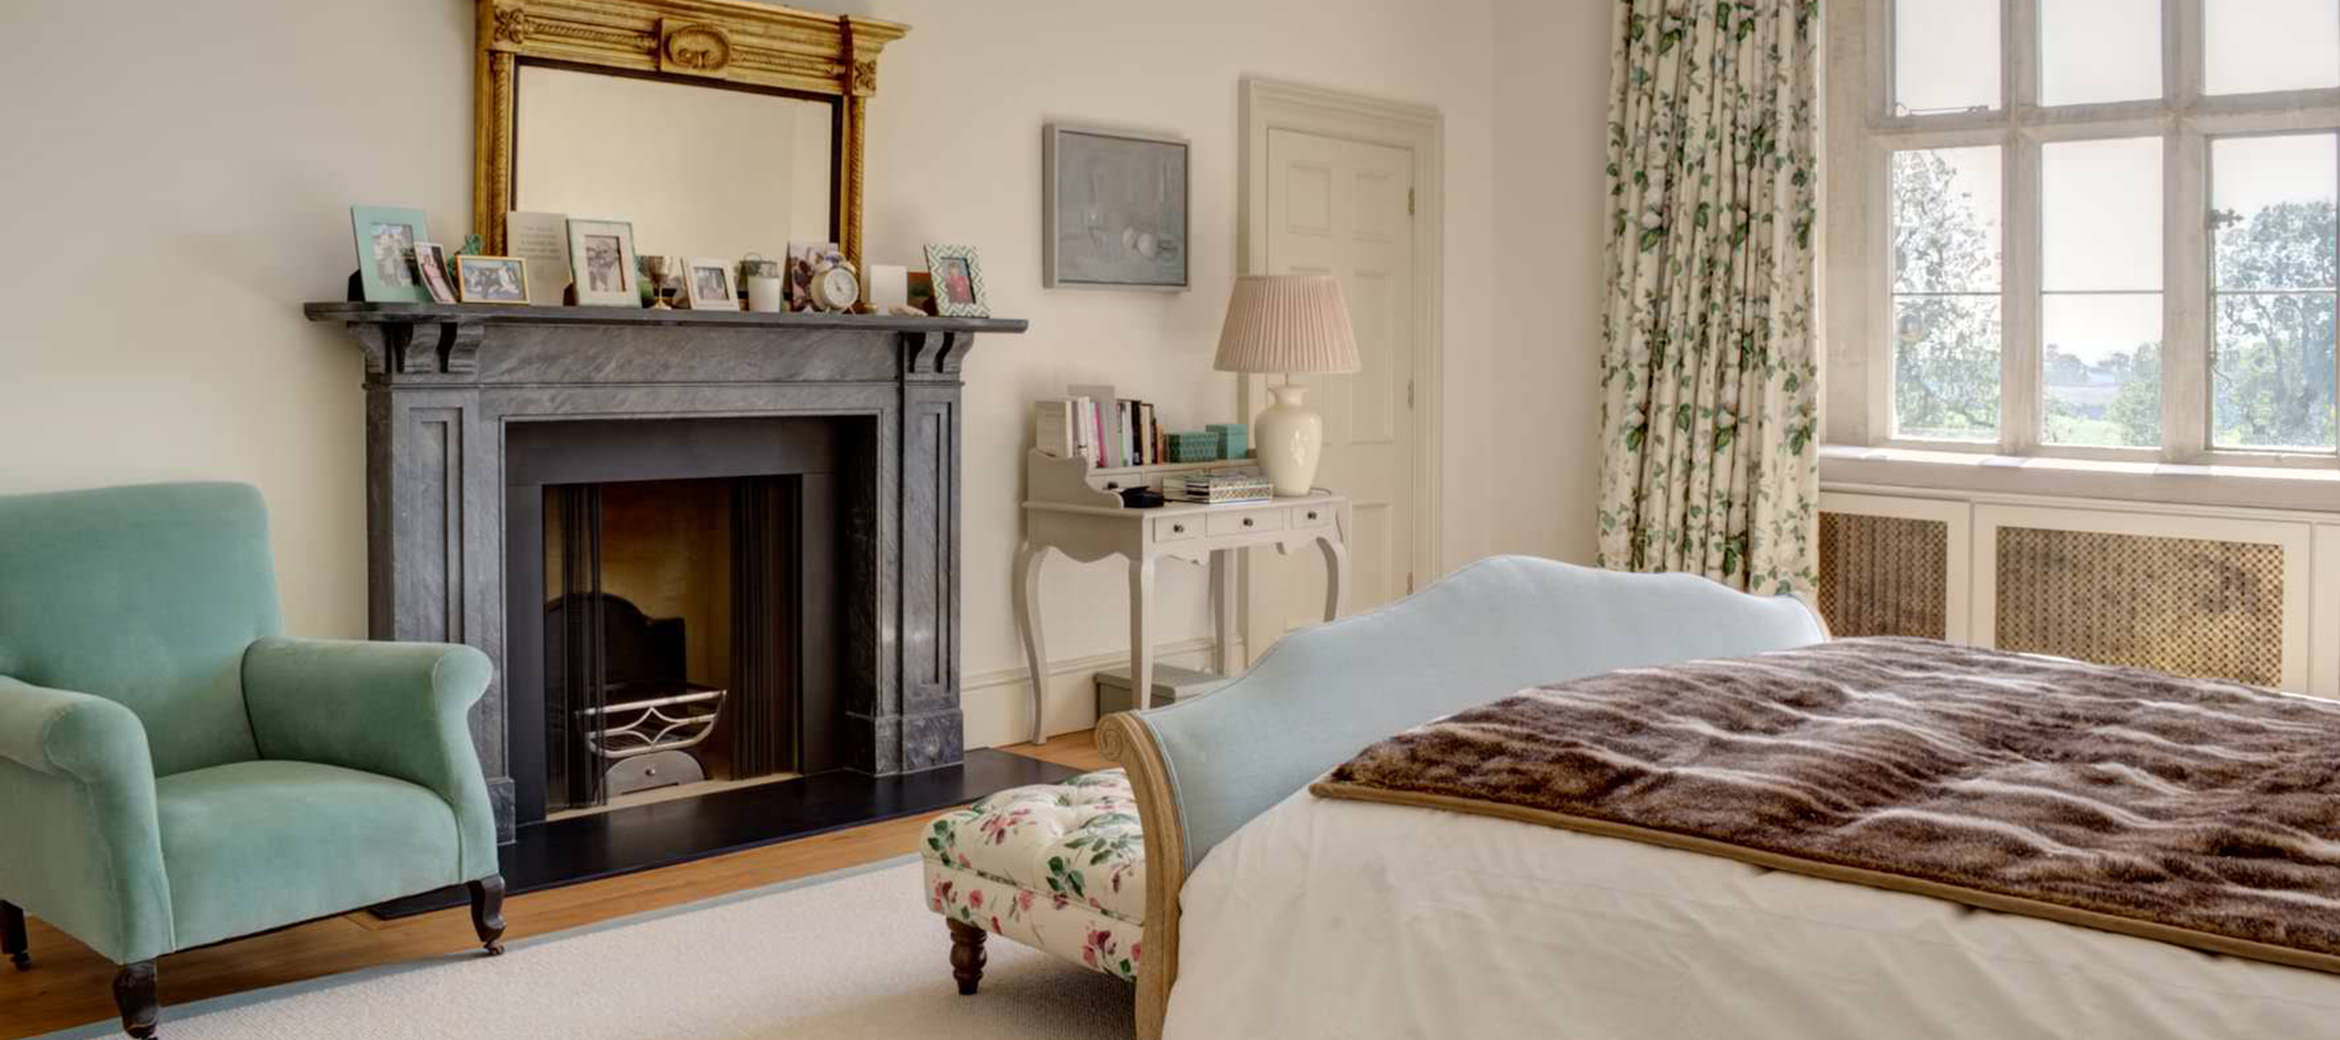 luxury-cotswold-august-house-1091-lcr